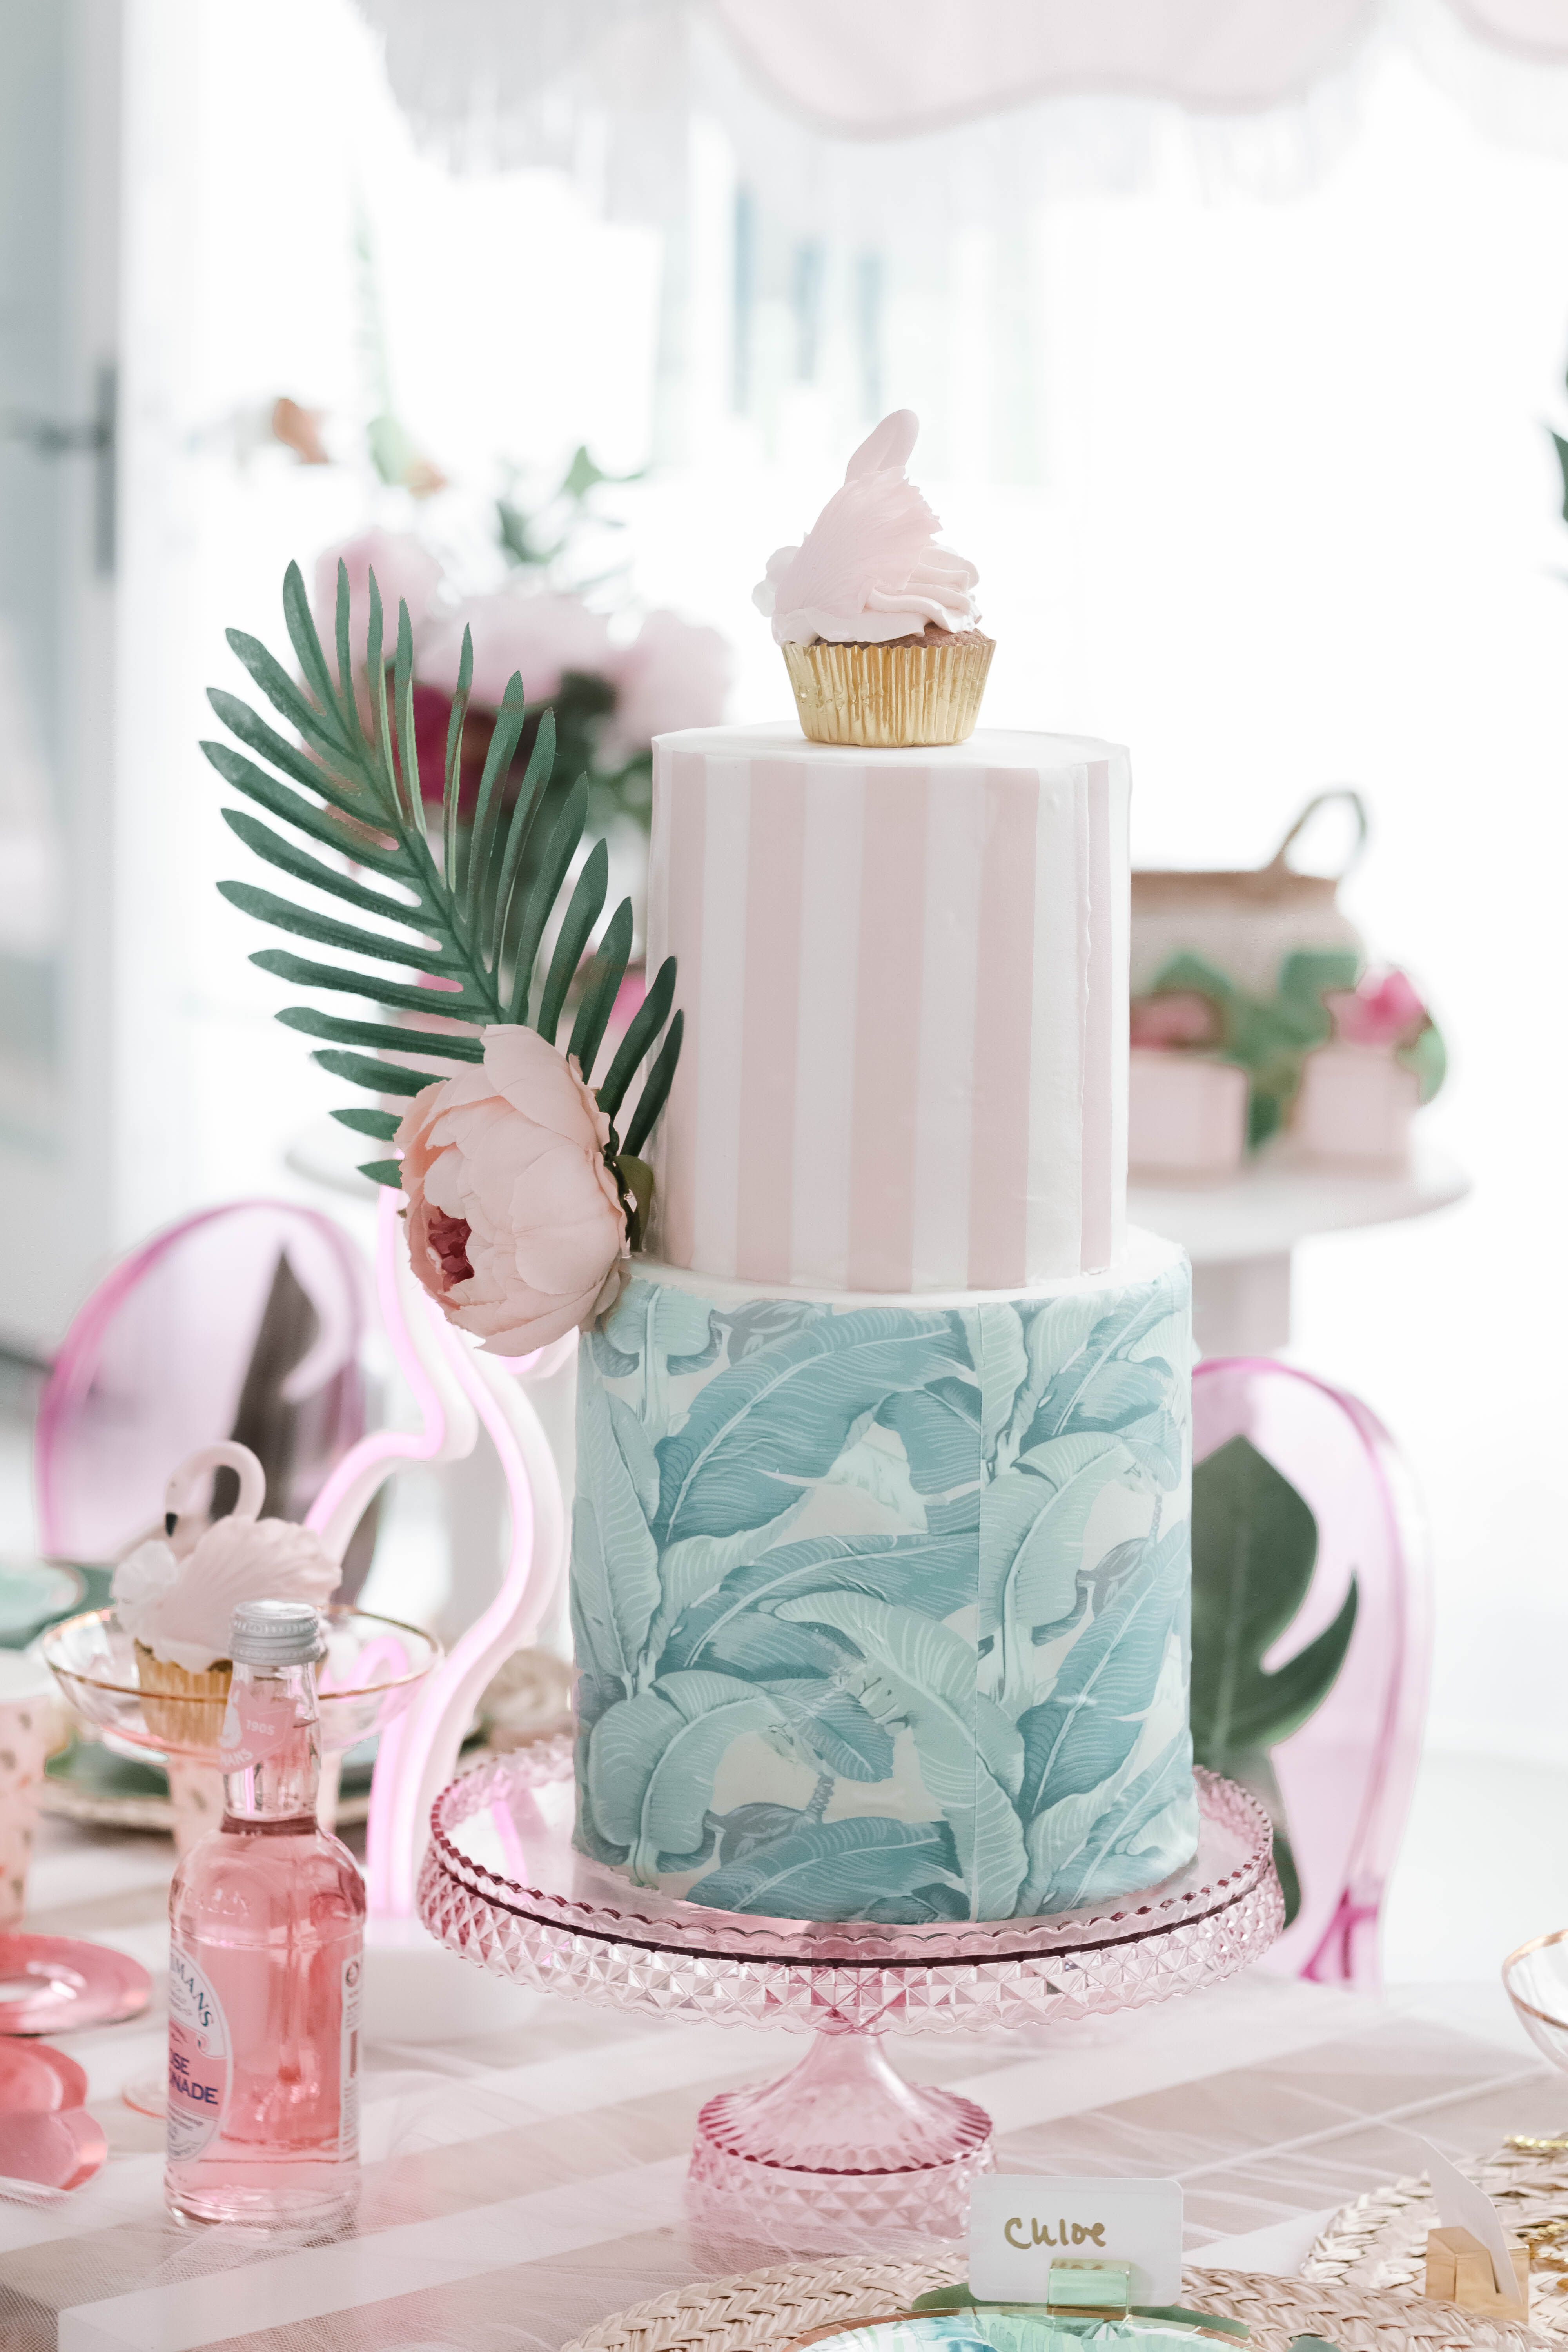 How cute is this Beverly Hills Hotel Inspired Cake